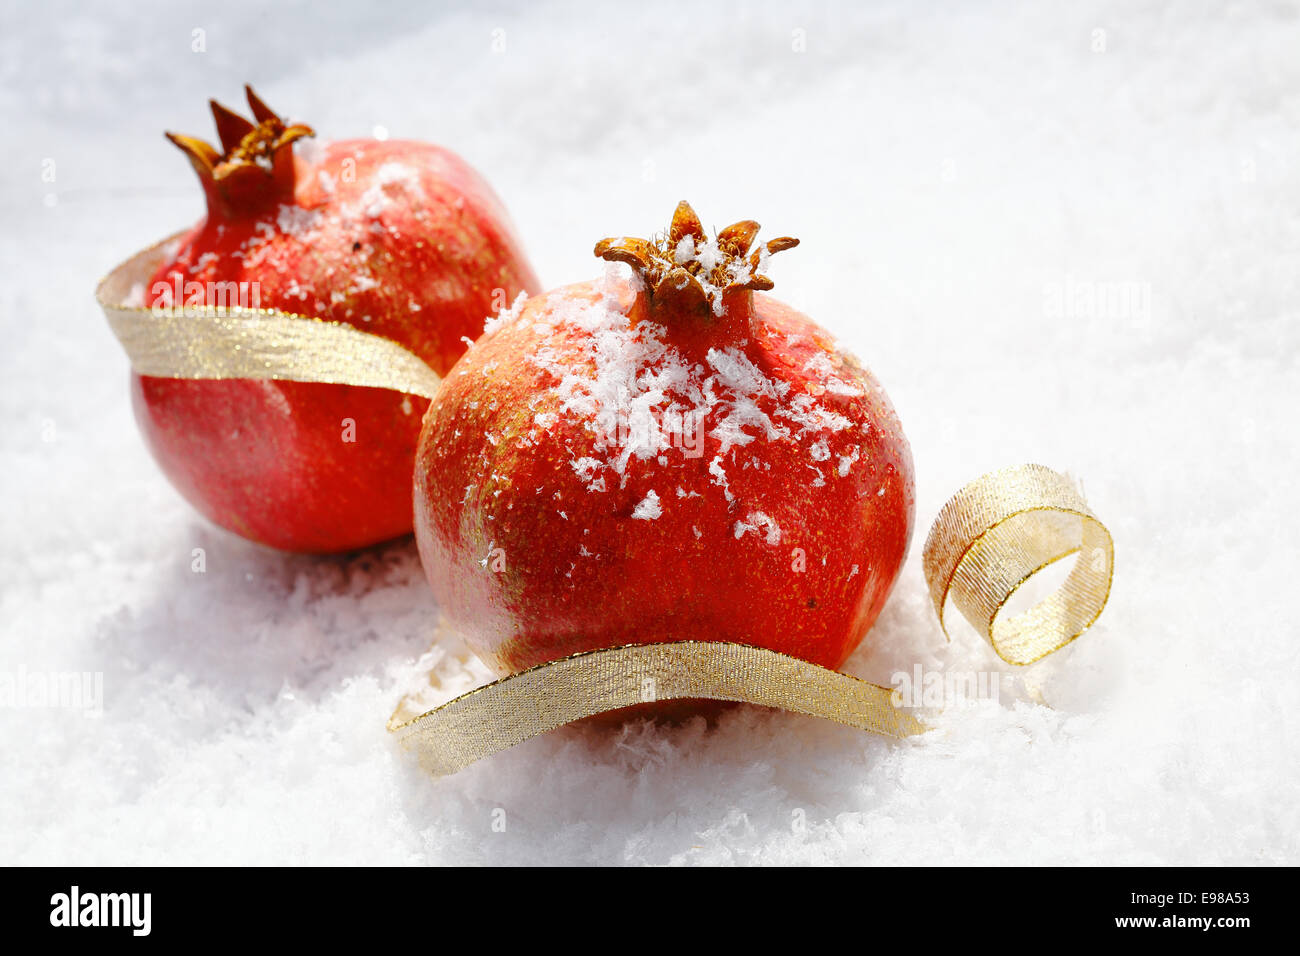 Vivid red Christmas pomegranates dusted with snowflakes lying in fresh winter snow with a decorative gold ribbon - Stock Image